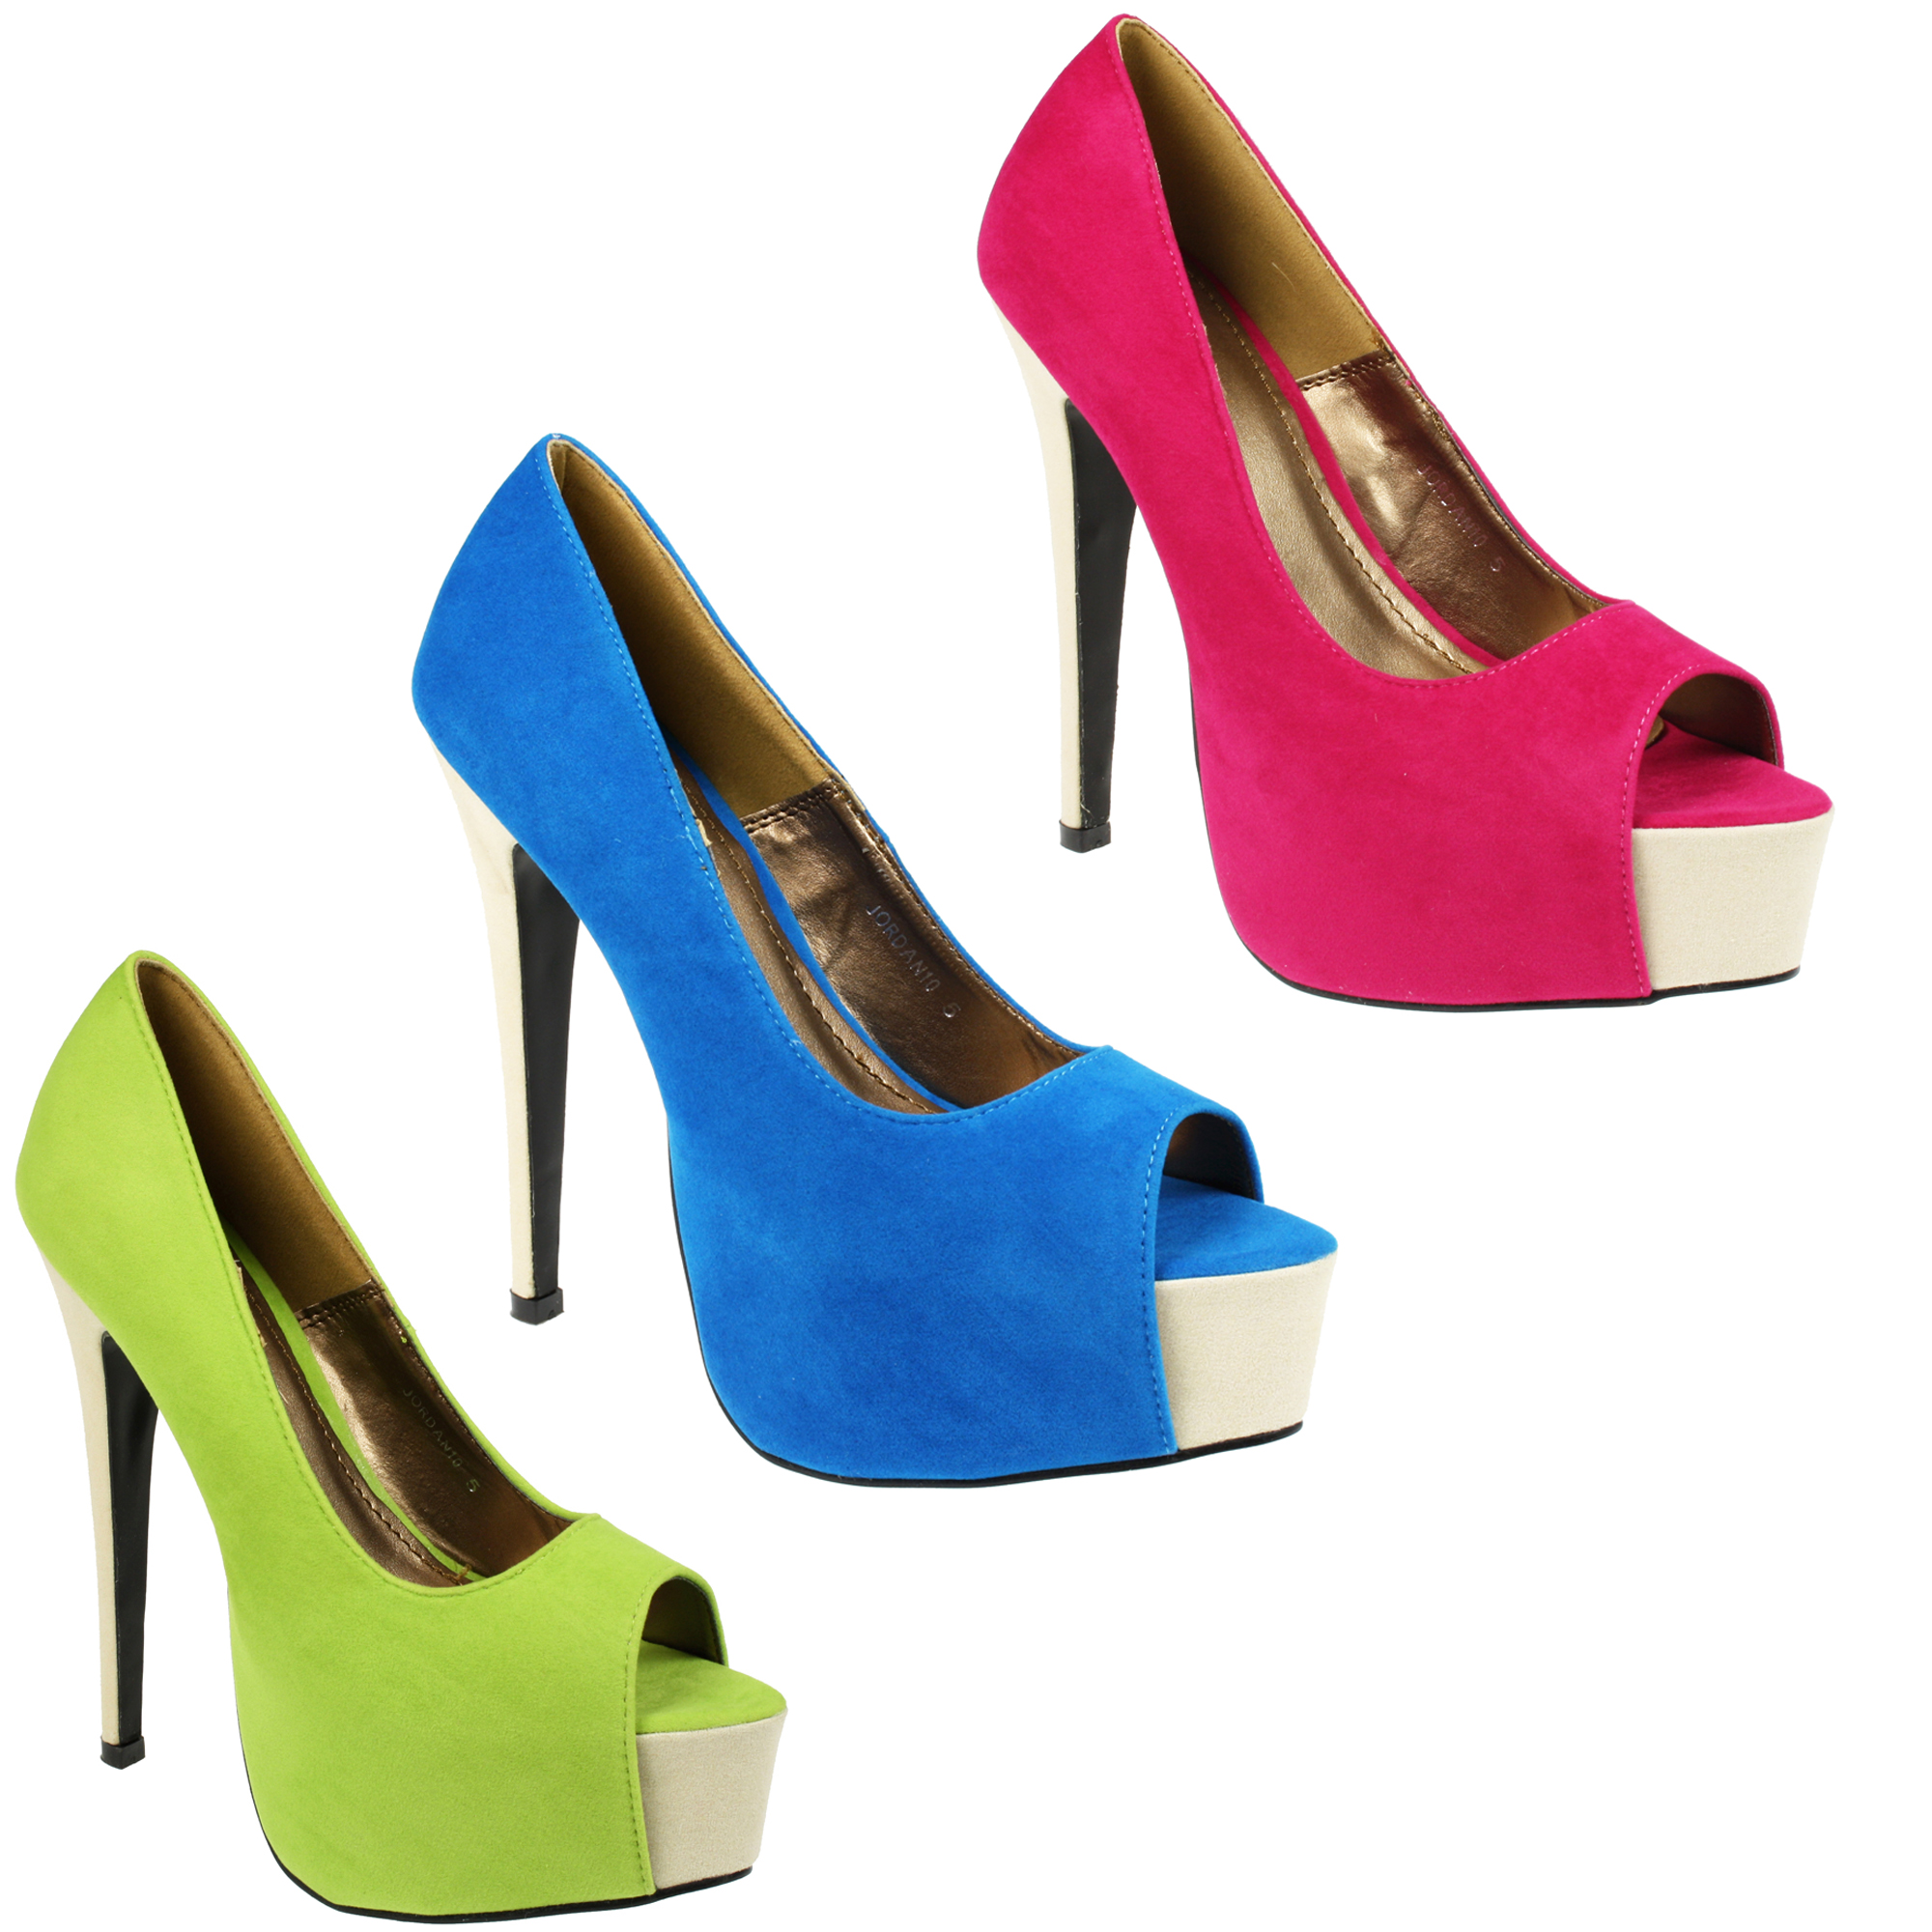 WOMENS LADIES FASHION HIGH STILETTO HEEL PLATFORM PEEPTOE COURT SUEDE SHOES SIZE